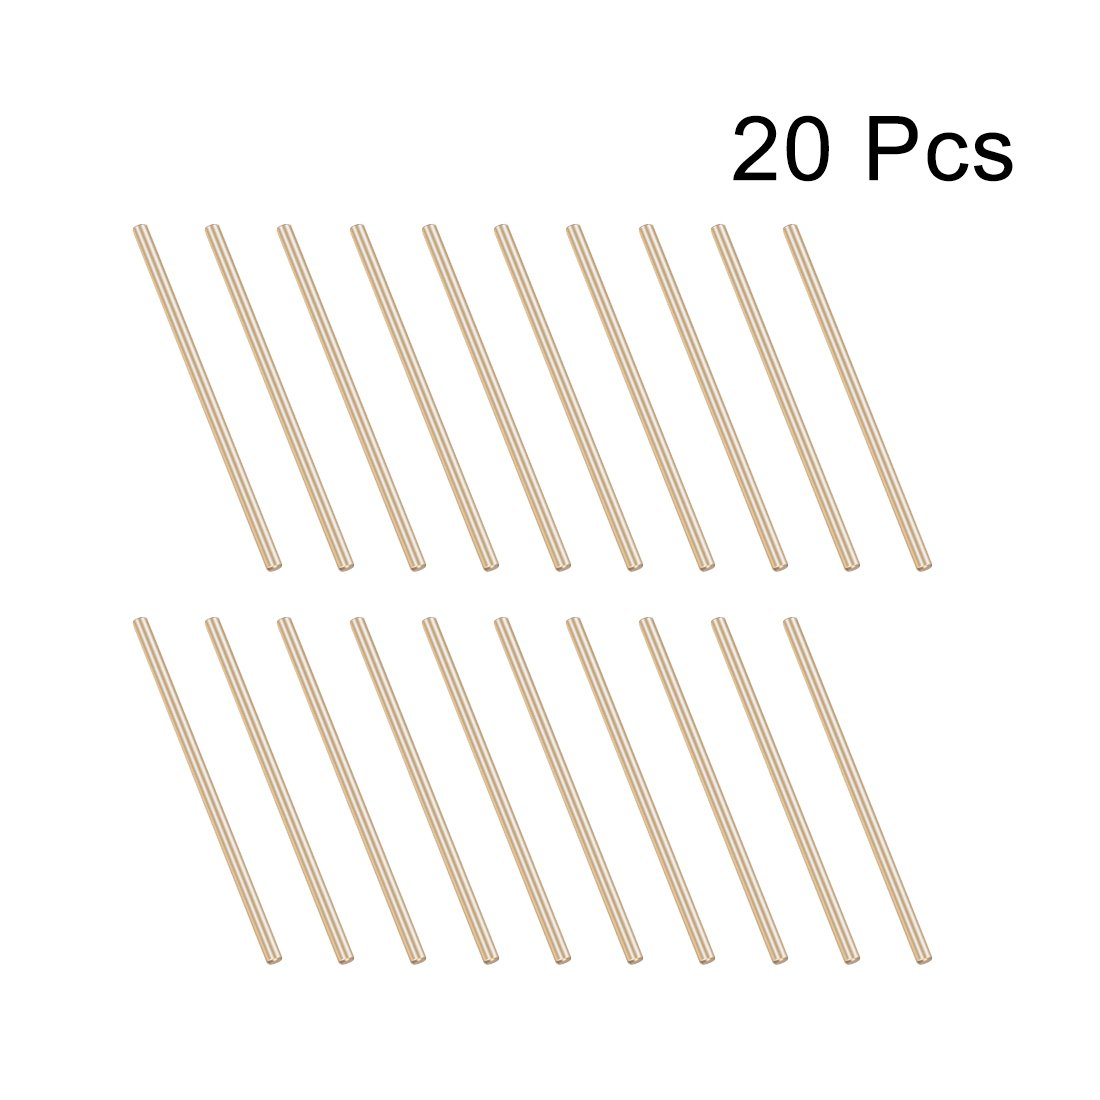 uxcell Brass Solid Round Rods Lathe Bar Stock for DIY Craft 50mmx2mm 20pcs